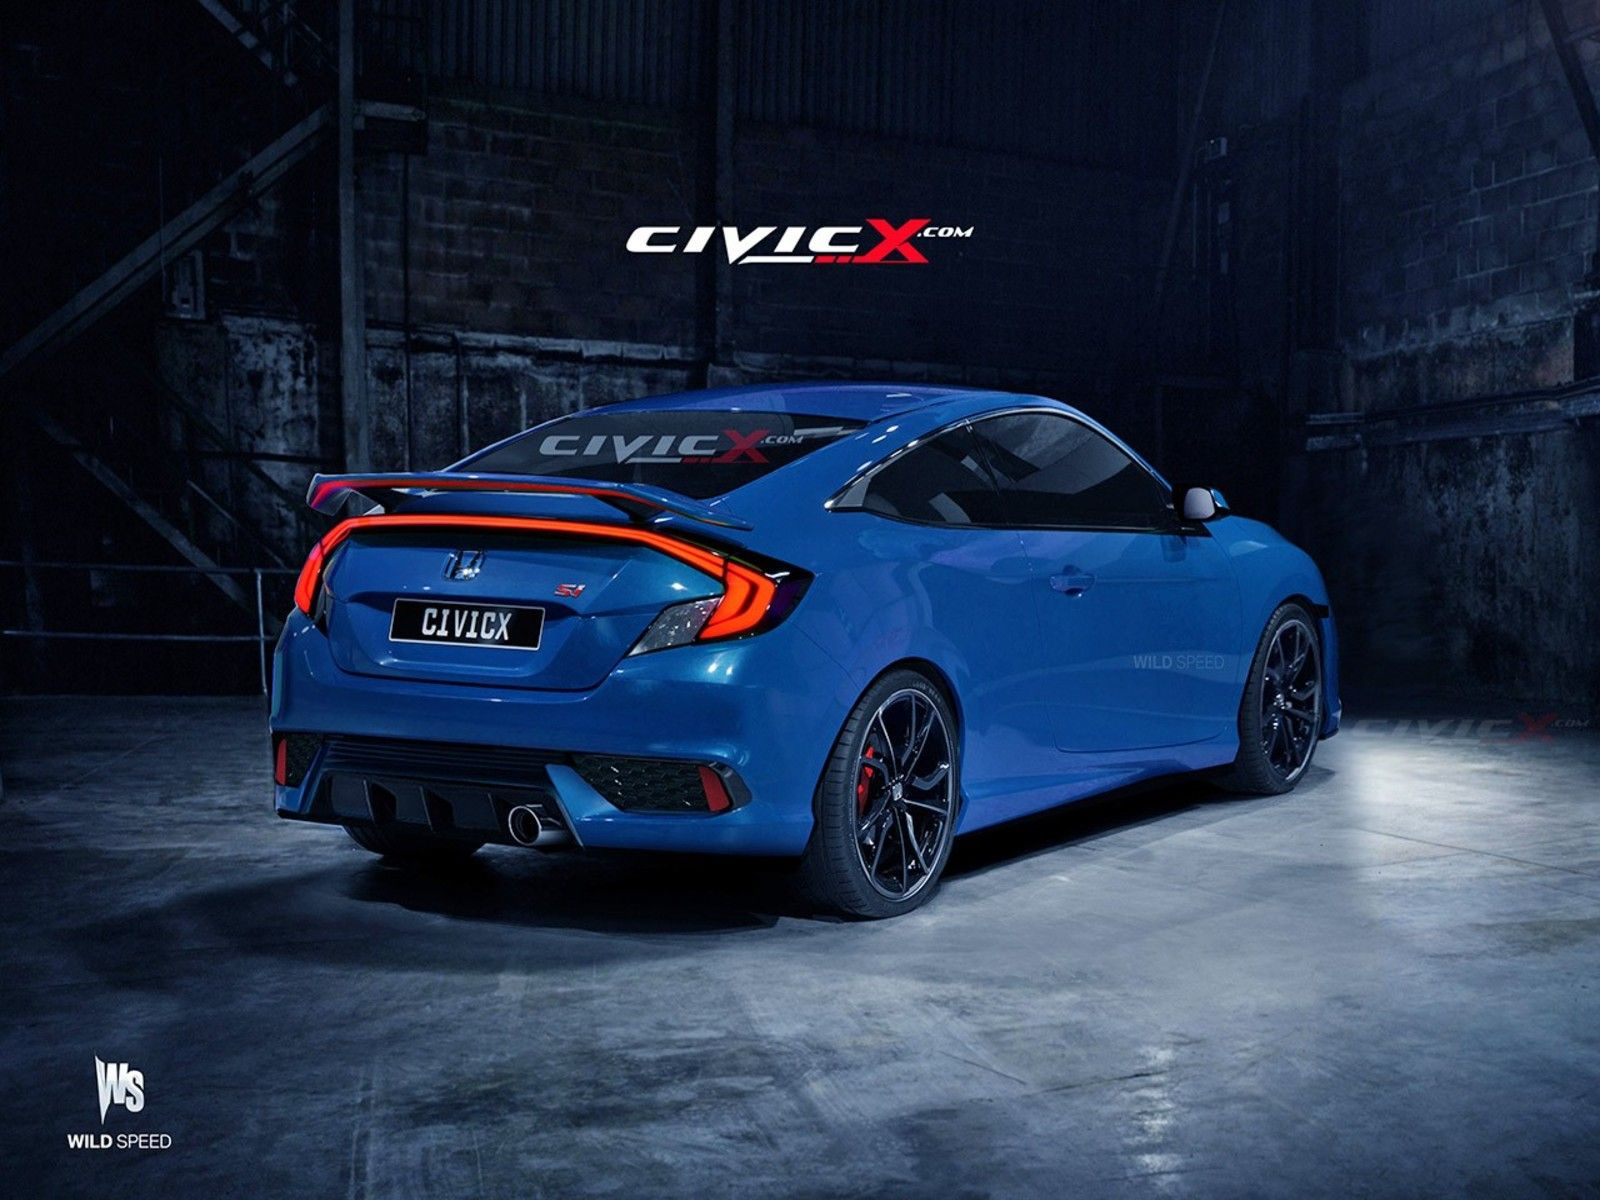 2017 Honda Civic 2 Door Si Honda Civic Si Honda Civic Civic Coupe